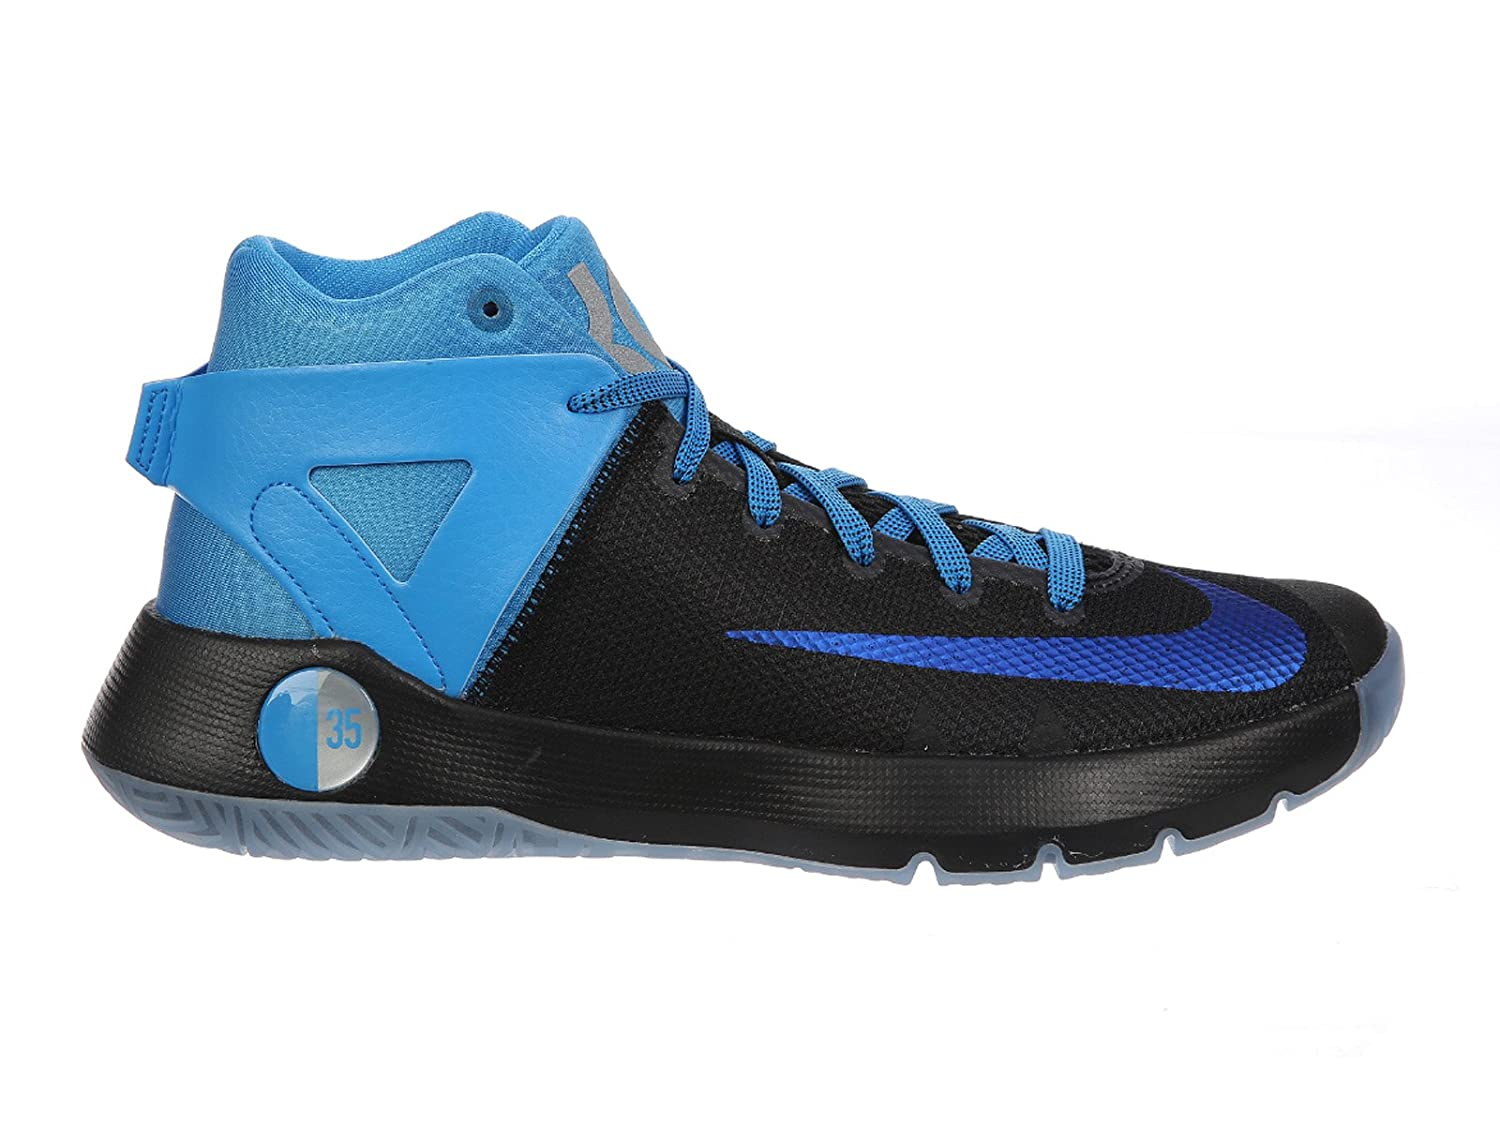 new styles 93038 d9db0 Amazon.com   Nike Men s KD Trey 5 IV PRM Kevin Durant Basketball Shoes  844589 040 Black Blue Glow (10 D(M) US)   Basketball